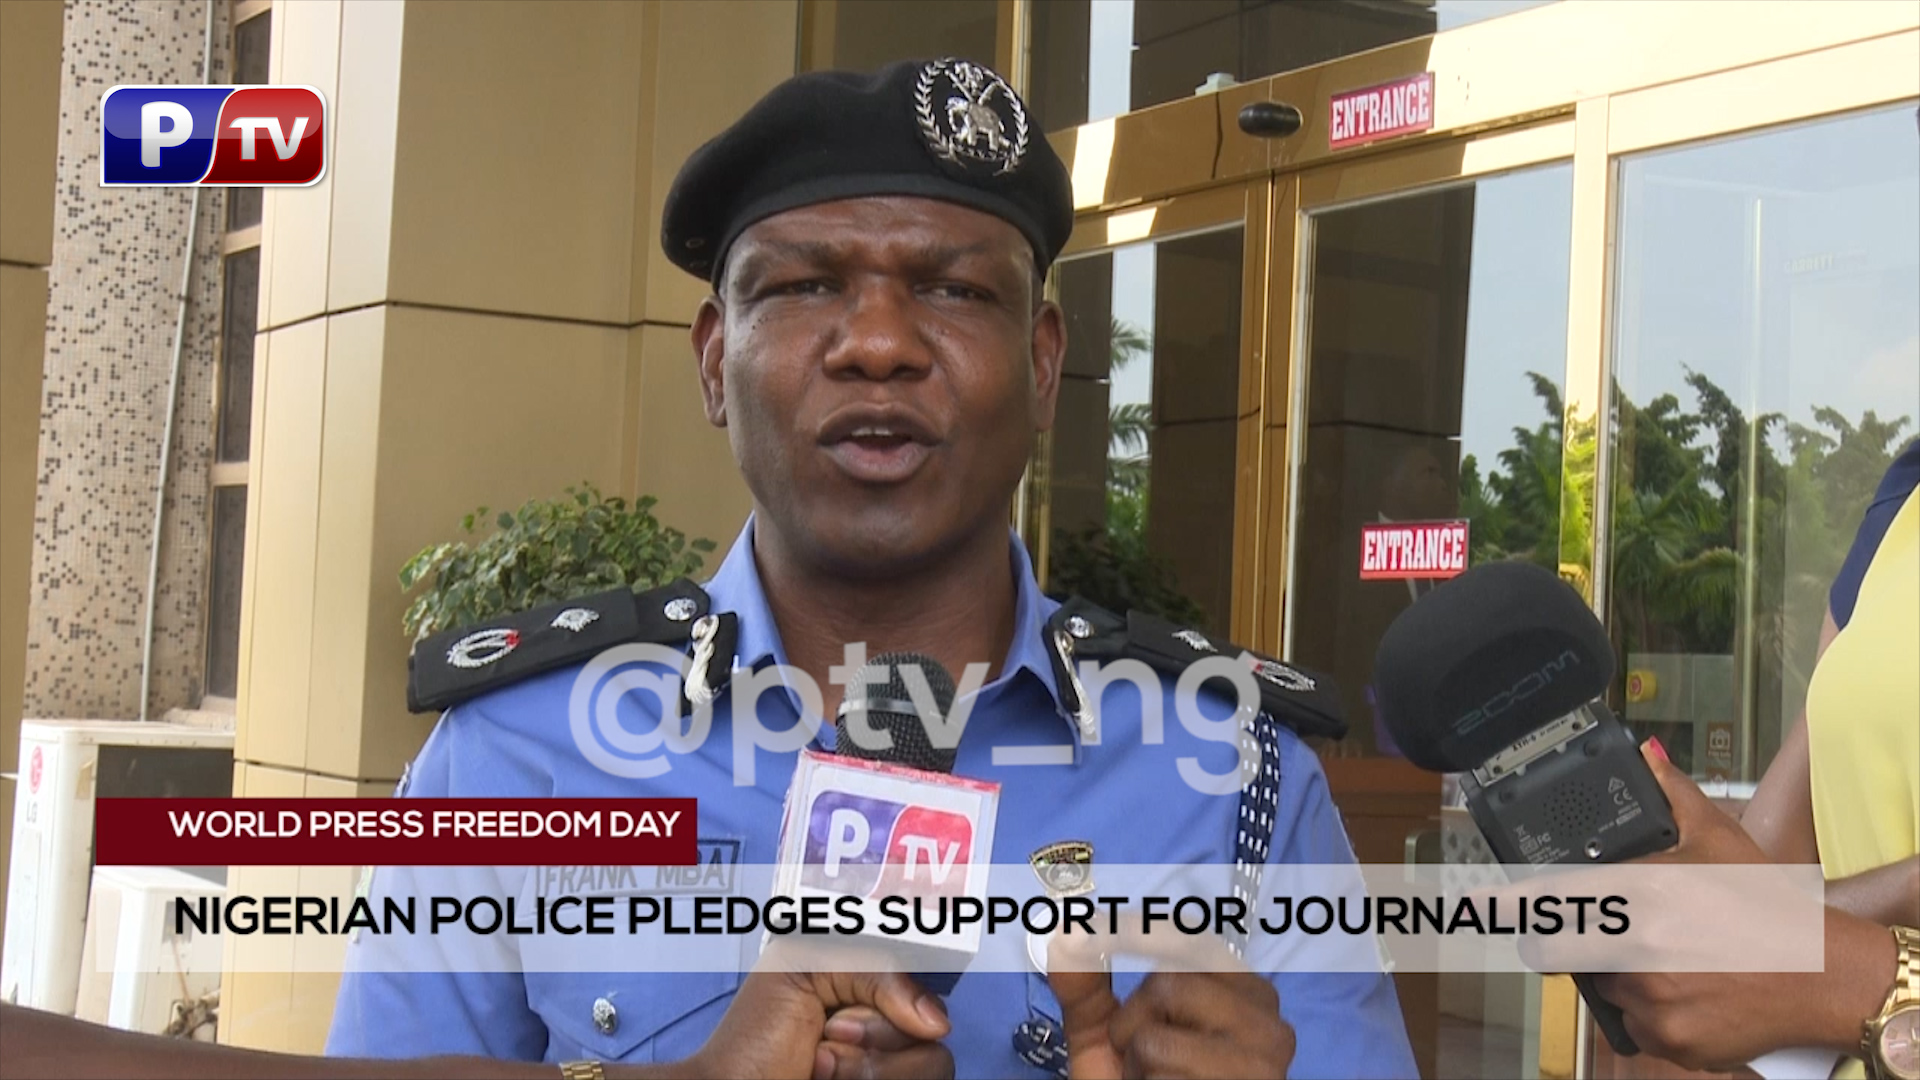 [VIDEO]World Press Freedom Day: Nigerian police pledges support for journalists